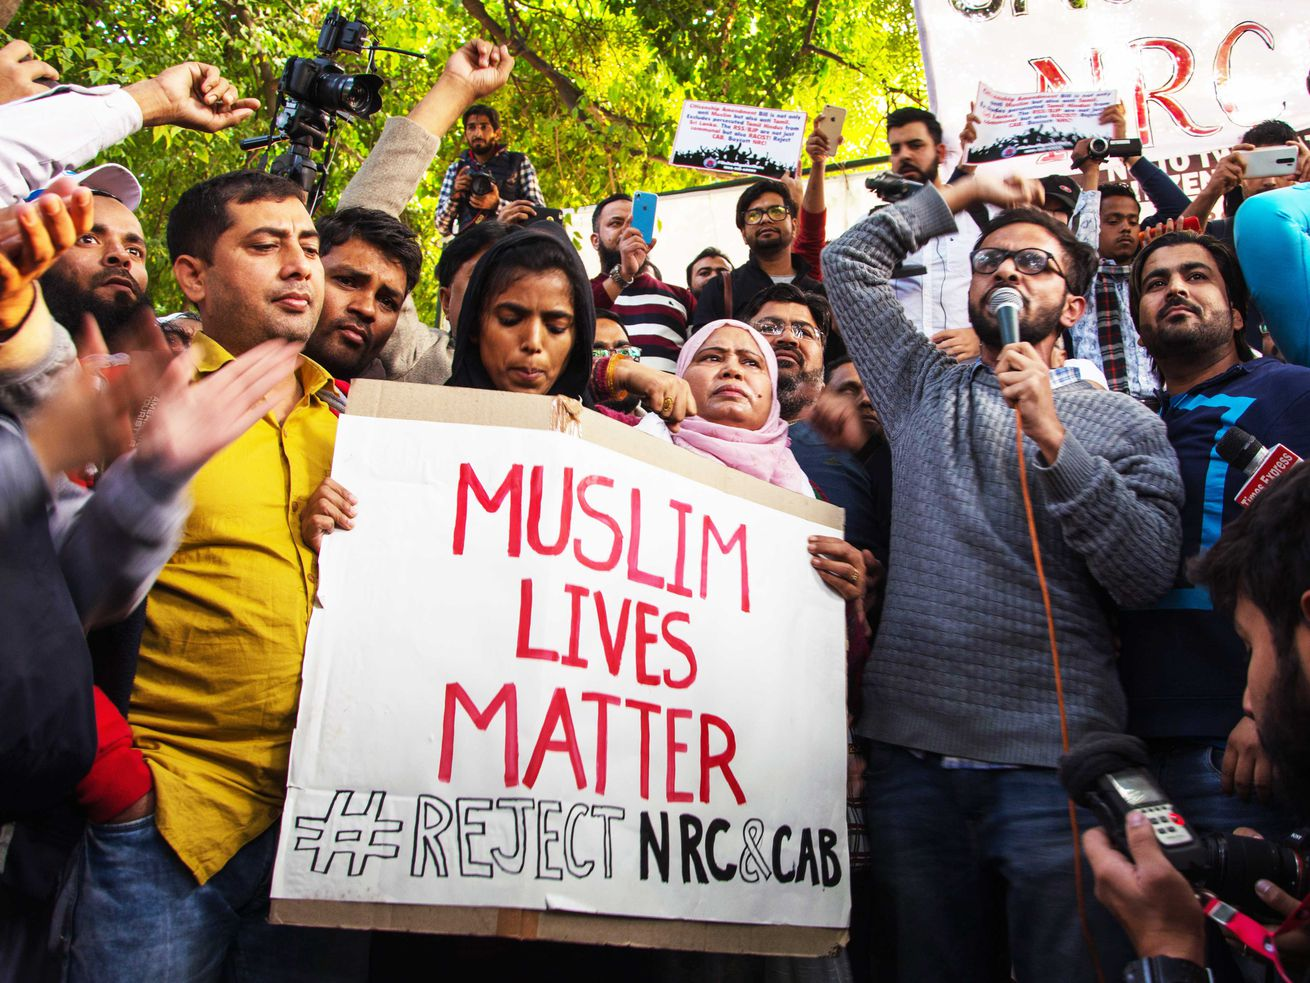 """A protester holds a sign that says """"Muslim Lives Matter #Reject NRC&CAB"""" in New Delhi, India."""